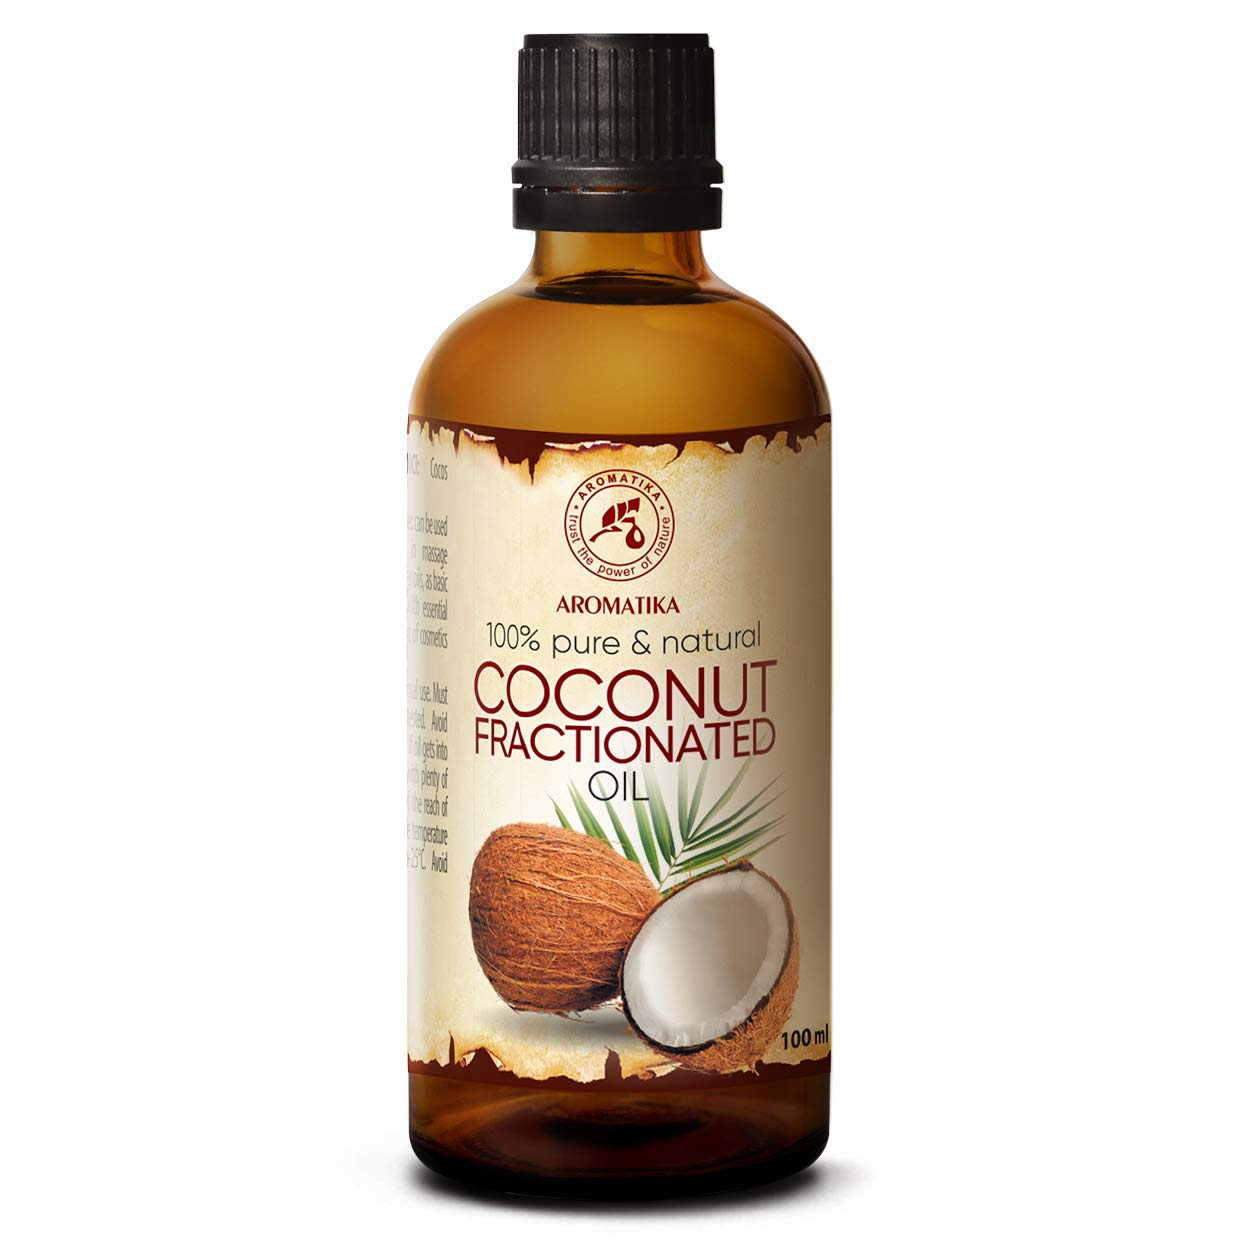 Fractionated Coconut Oil 3.4oz - MCT Oil - Cocos Nucifera Oil - 100% Pure & Natural - Base Oil - Odorless - Intensive Face Treatment - Body Care - Skin - Hair - for Beauty - Massage Oil - Wellness